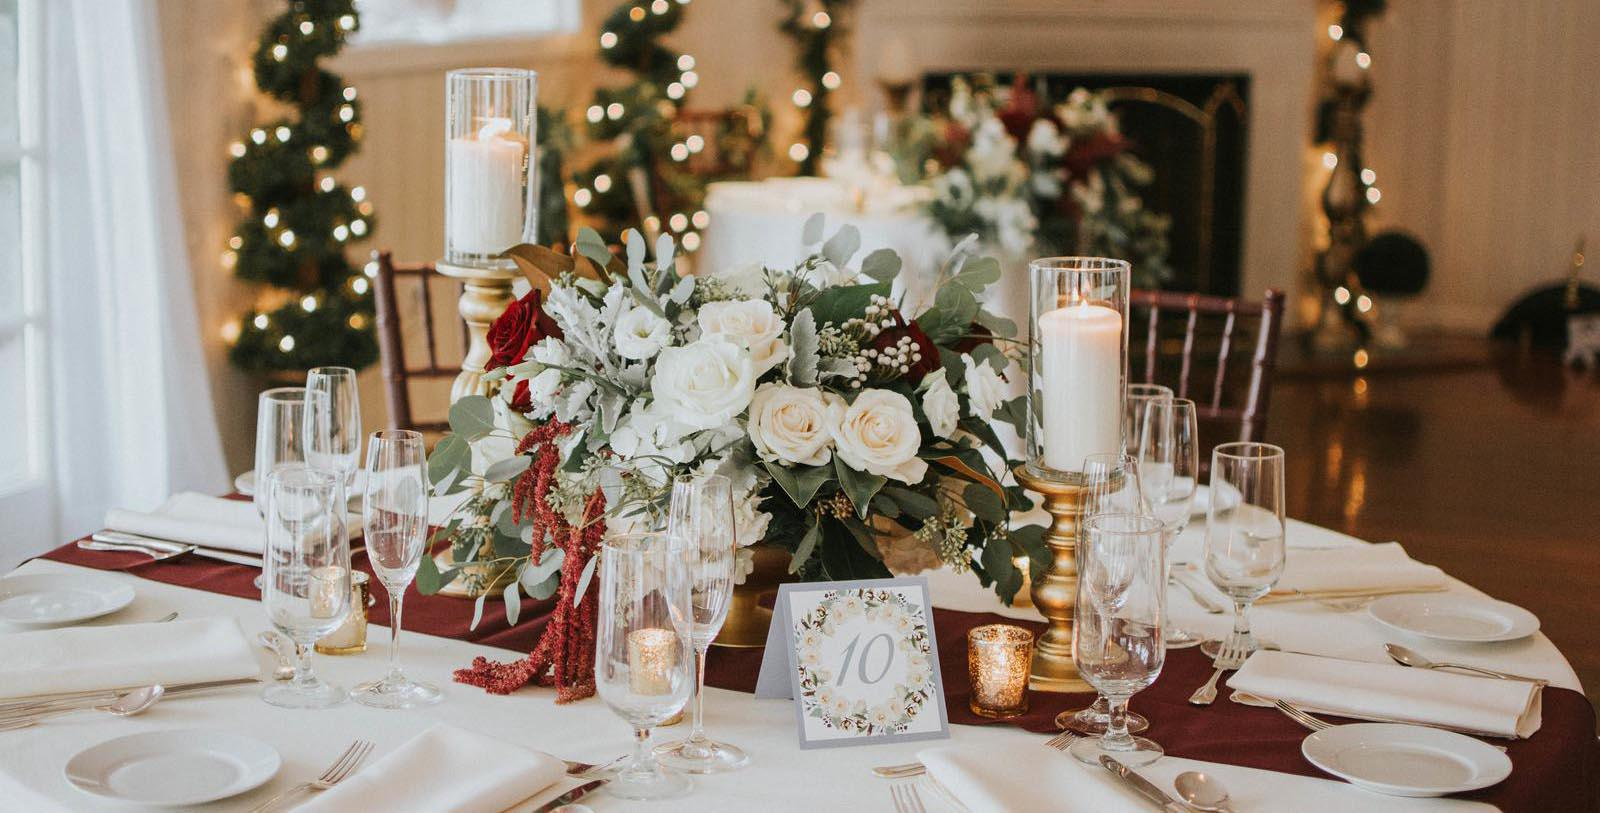 Image of Formal place setting with flowers for special event at Antrim 1844, Member of Historic Hotels of America, in Taneytown, Maryland, Experience